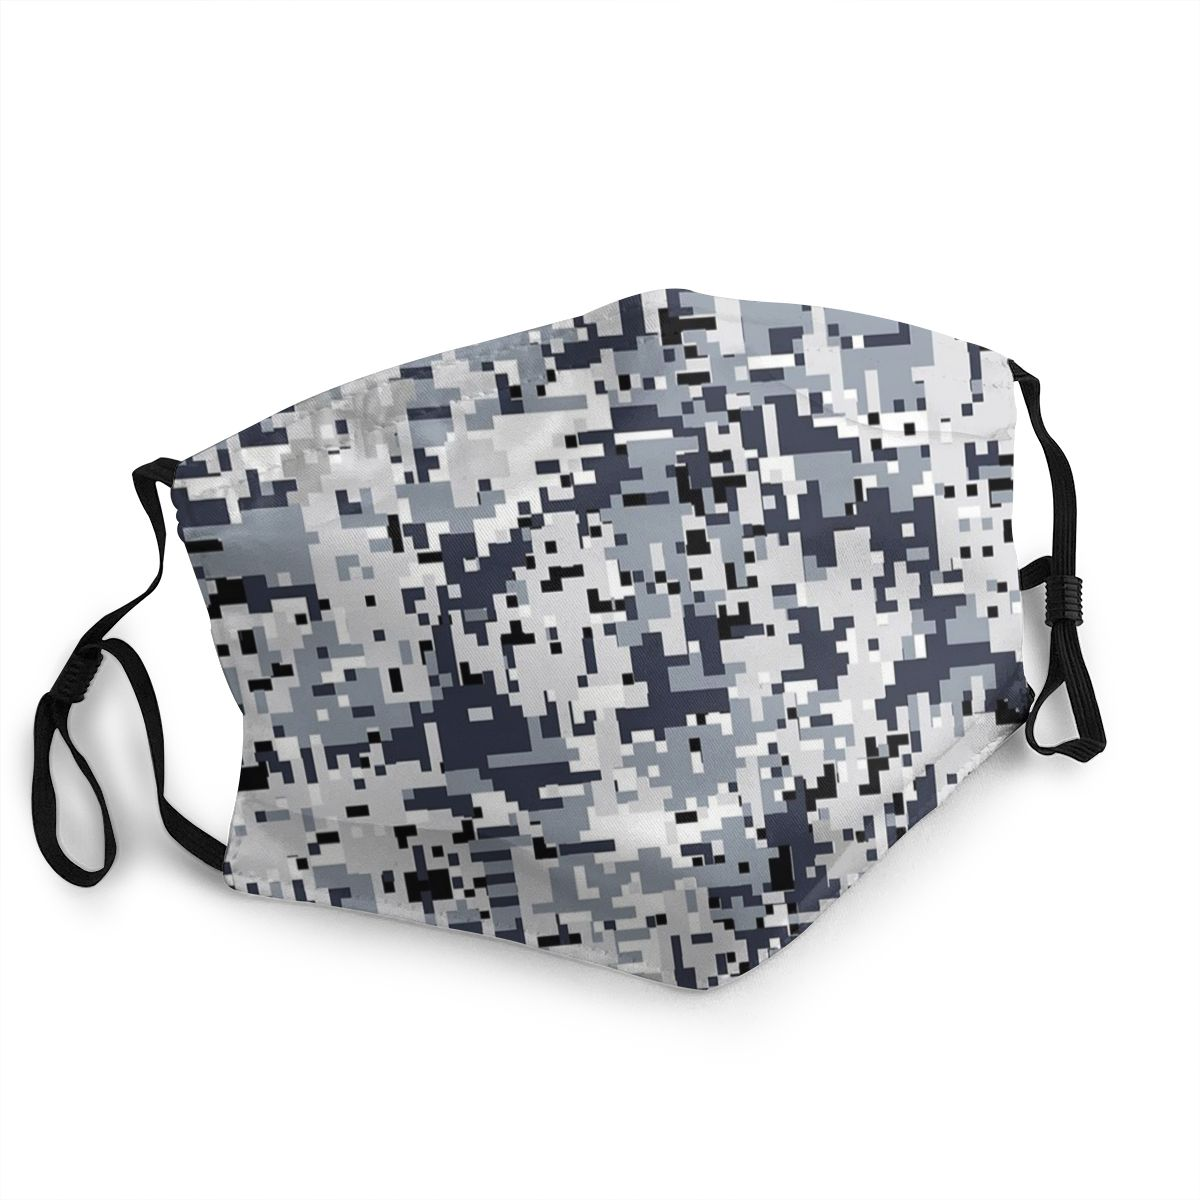 Urban Digital Army Camouflage Adult Reusable Mouth Face Mask Anti Bacterial Dustproof Protection Cover Respirator